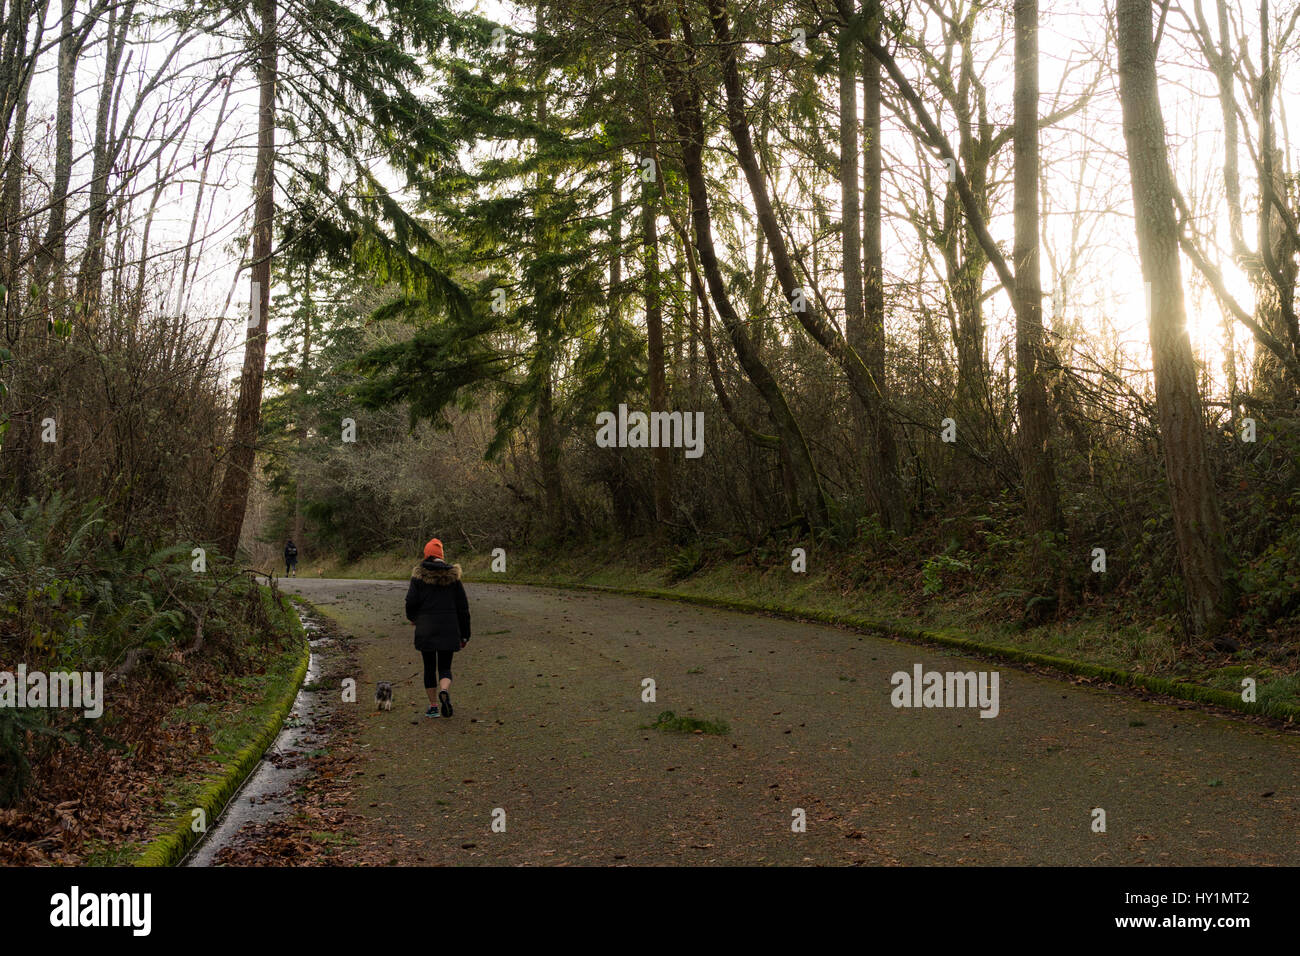 A girl walks a small dog in Discovery Park while the sun peeks through the trees on an abandoned road. - Stock Image